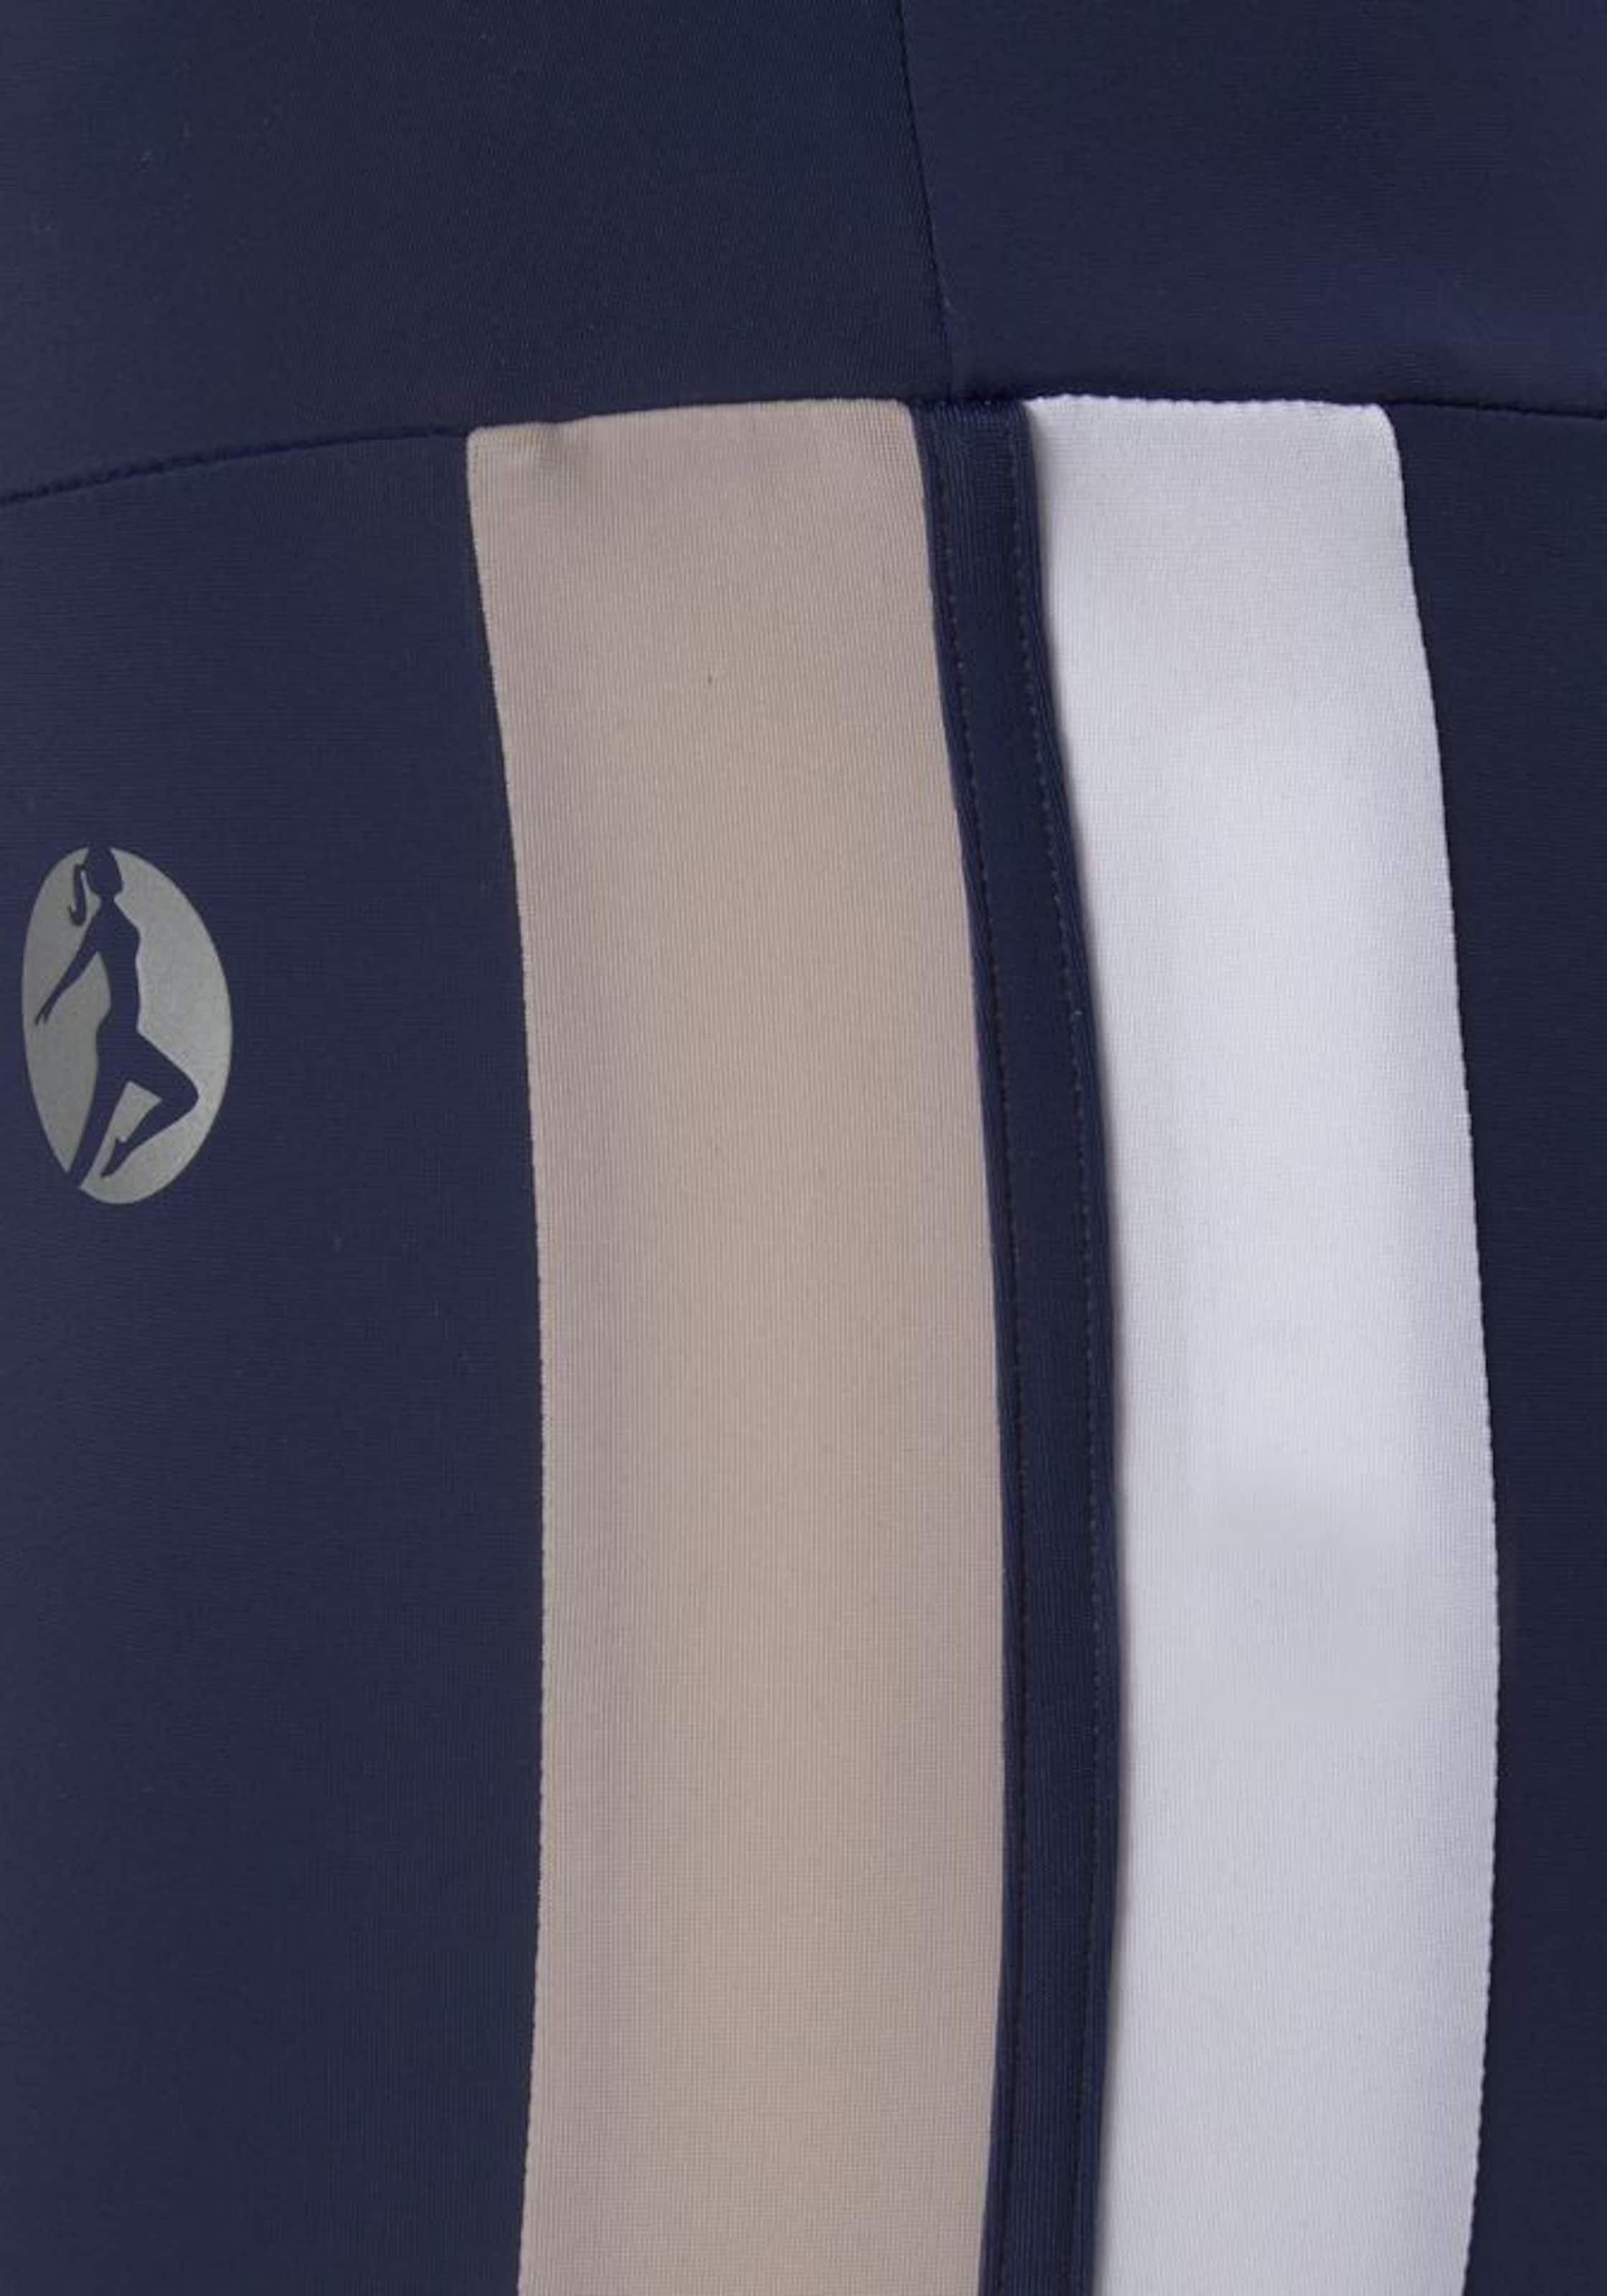 By Leggings Lascana In 'colour Blocking' Active Nachtblau EDe9IWH2Y